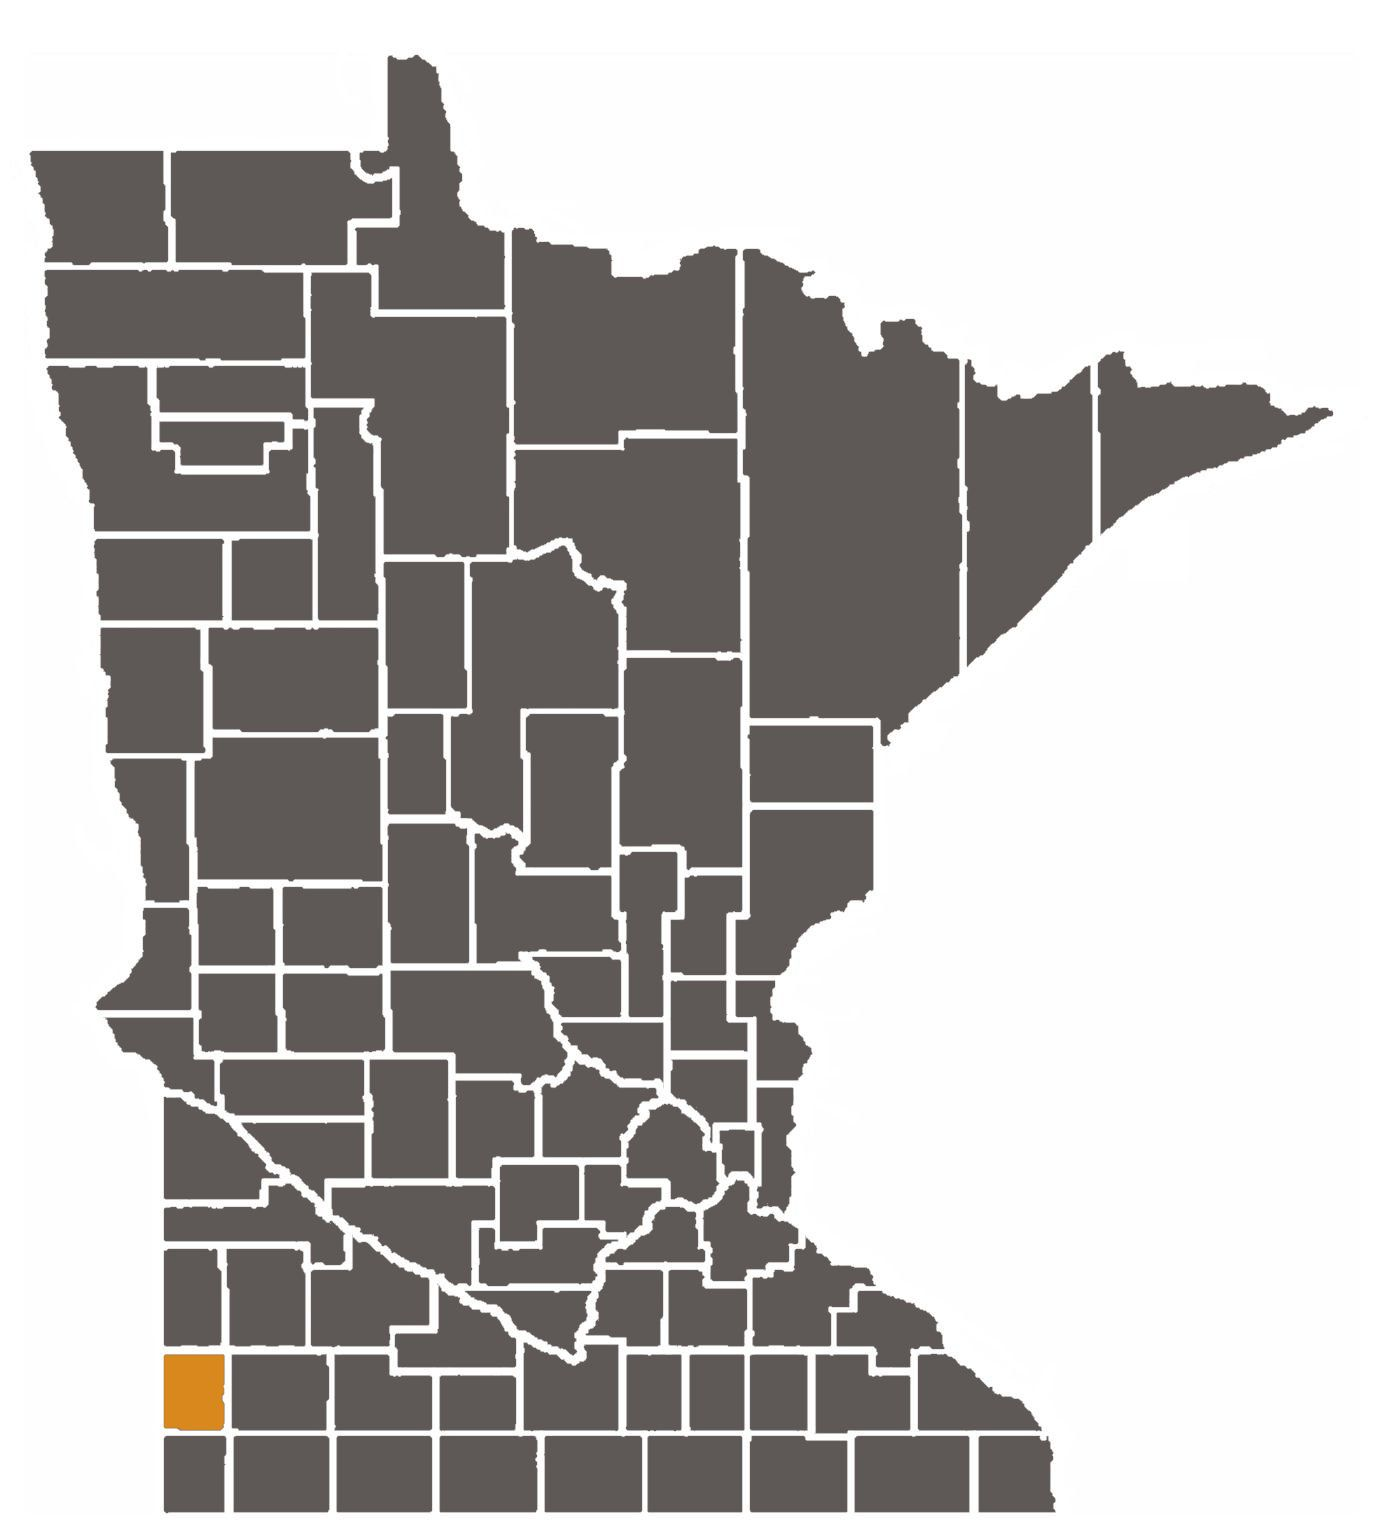 Minnesota map with Pipestone County highlighted.